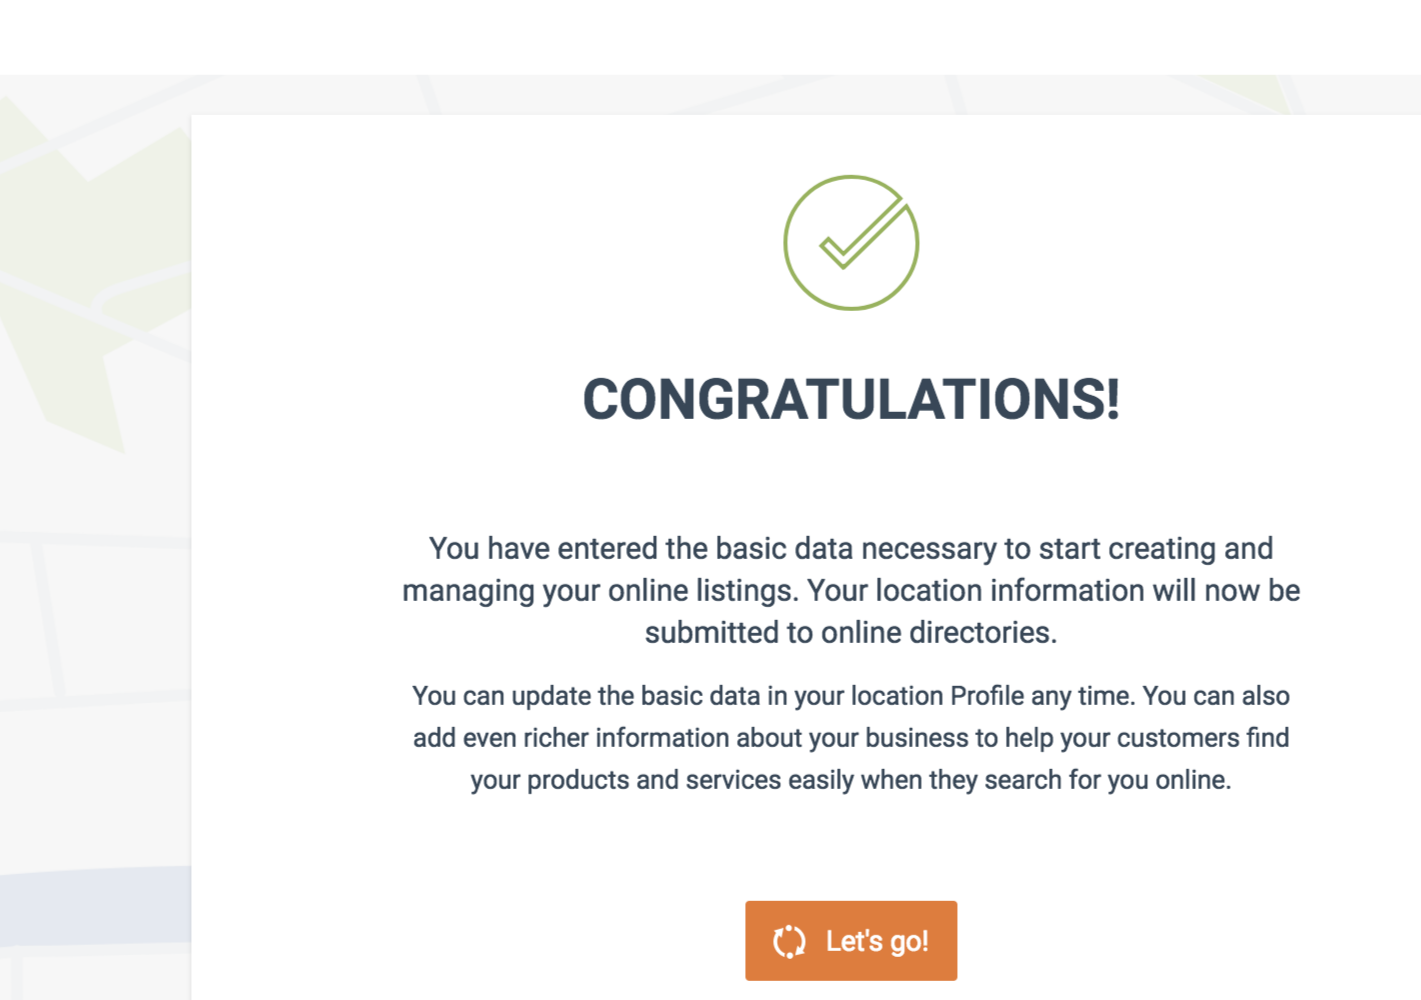 Confirmation Message that you have successly completed the basic fields for your online business listing